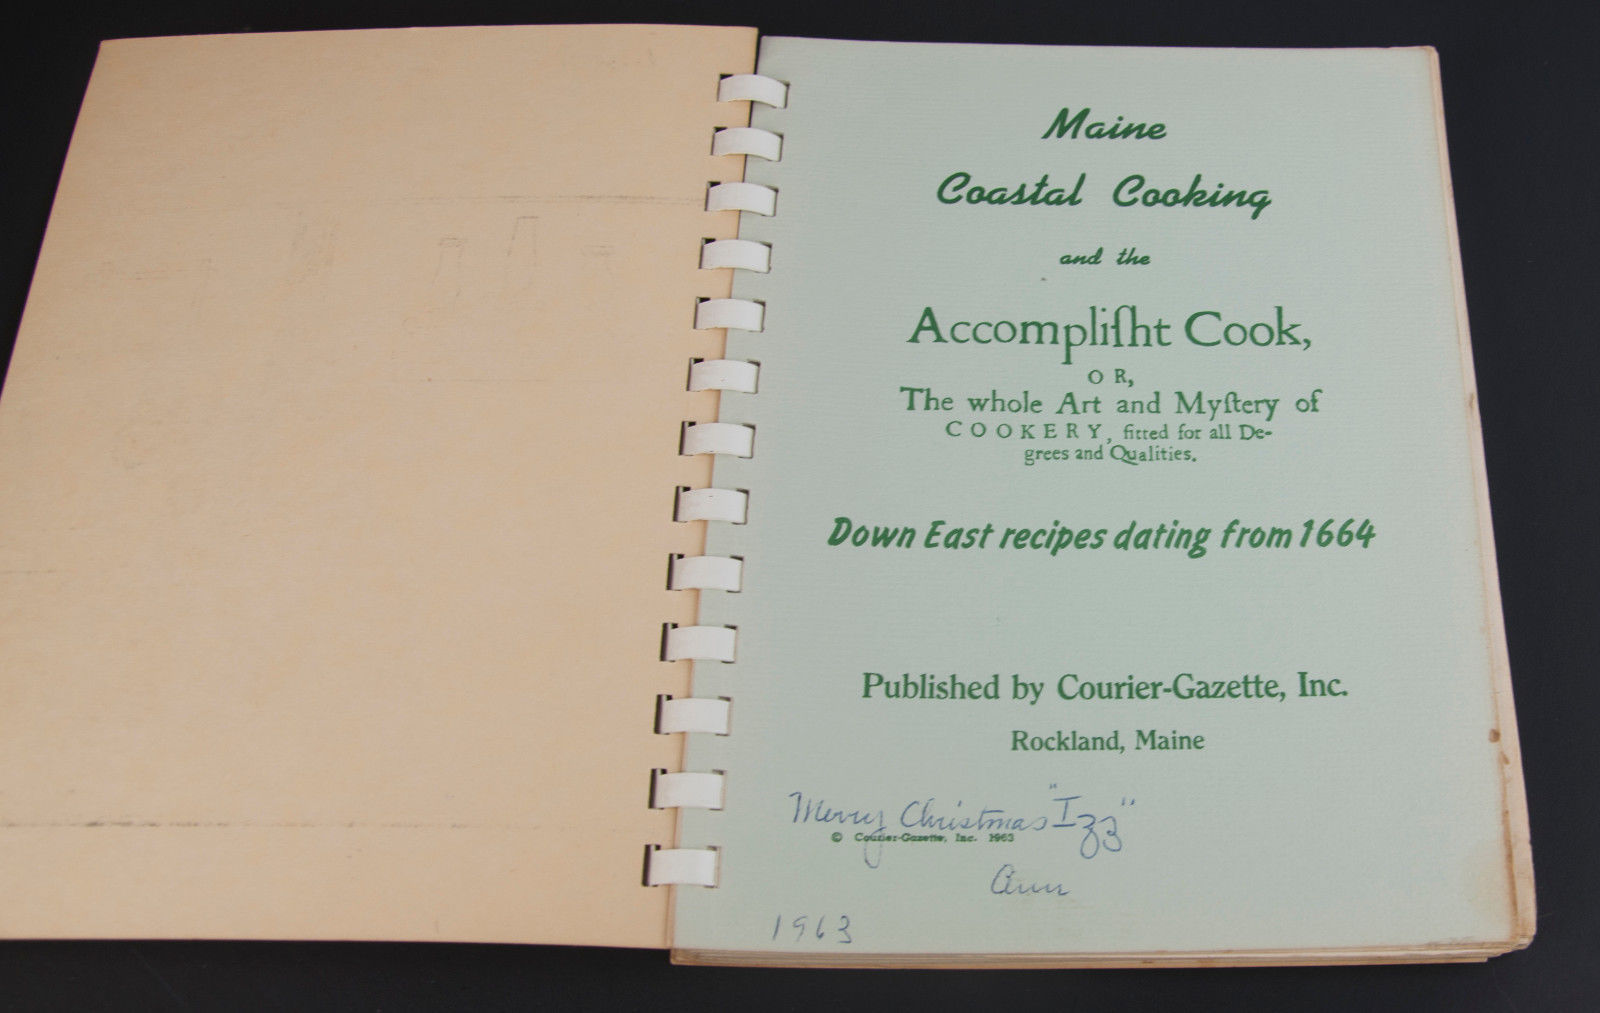 Maine Coastal Cooking Spiral Bound Cookbook Recipies dating from 1664